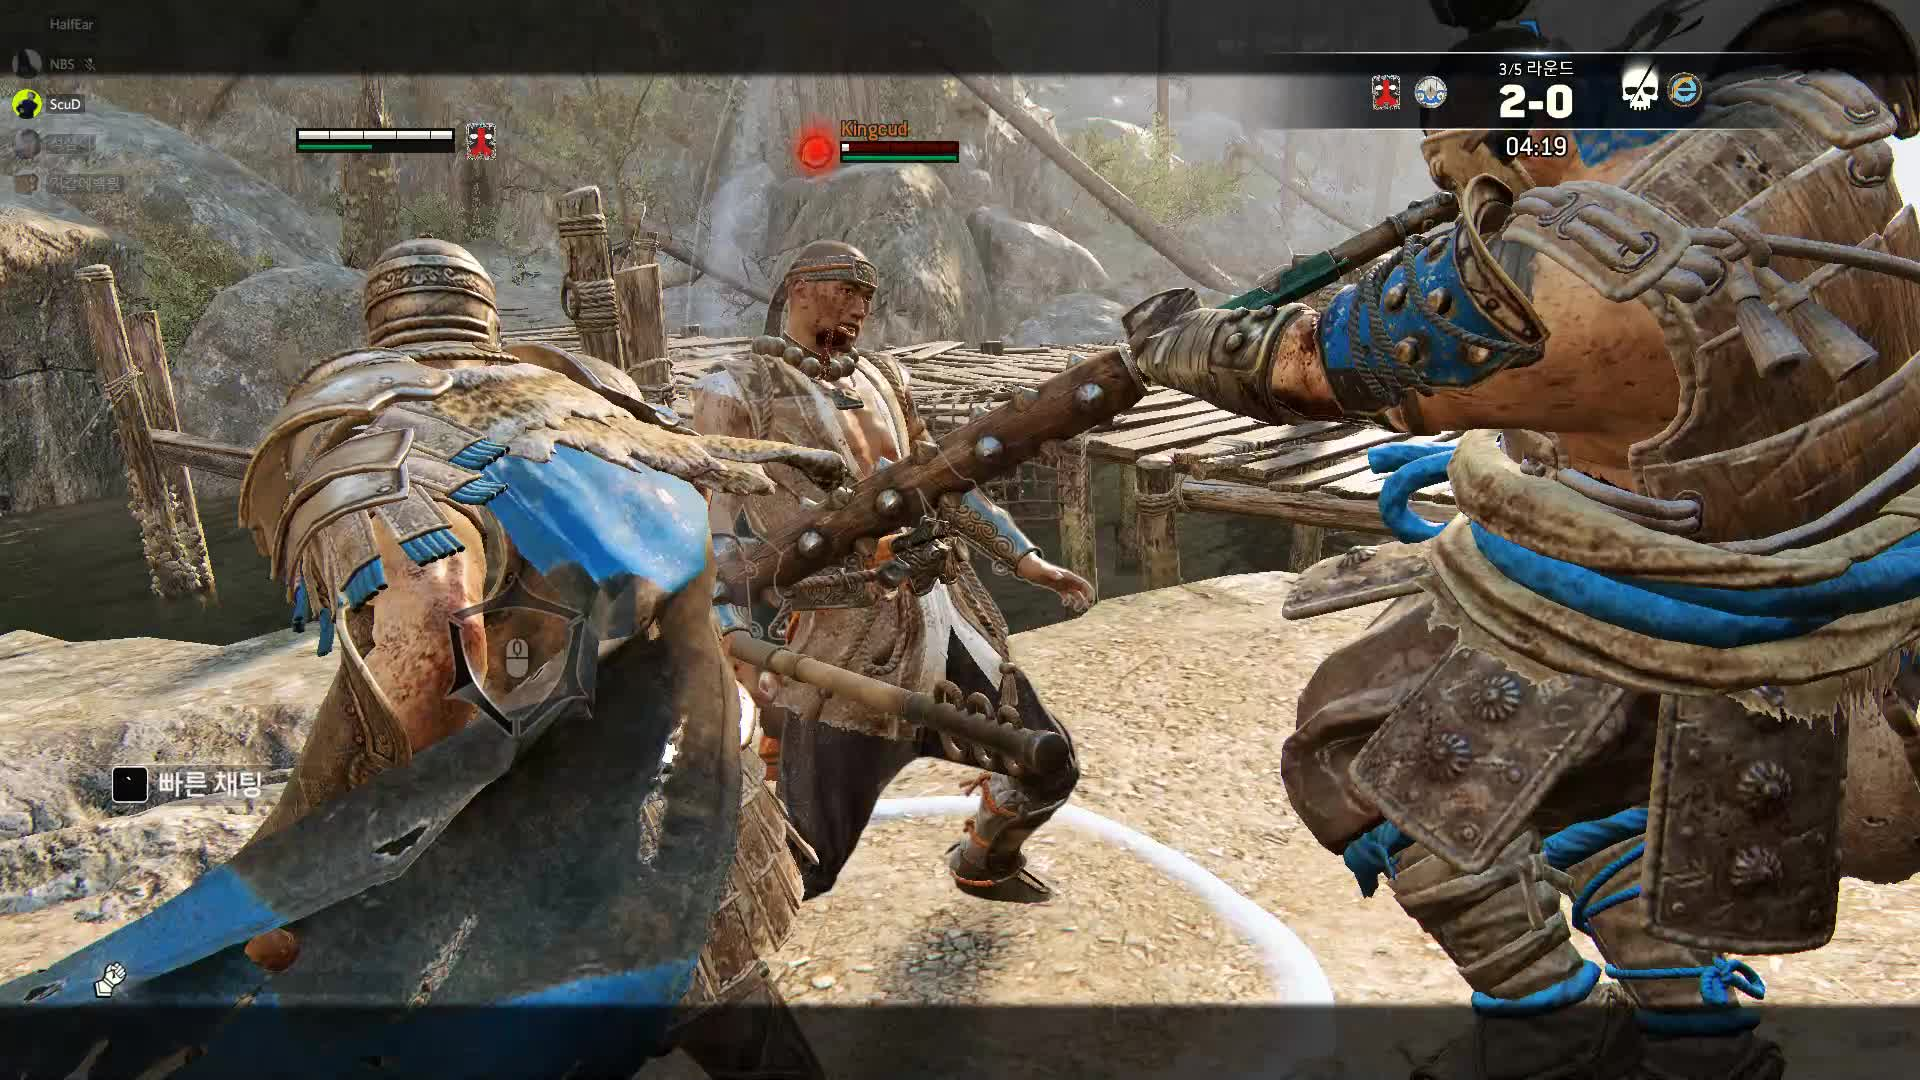 forhonor, For Honor 2019.03.30 - 01.34.26.06.DVR GIFs